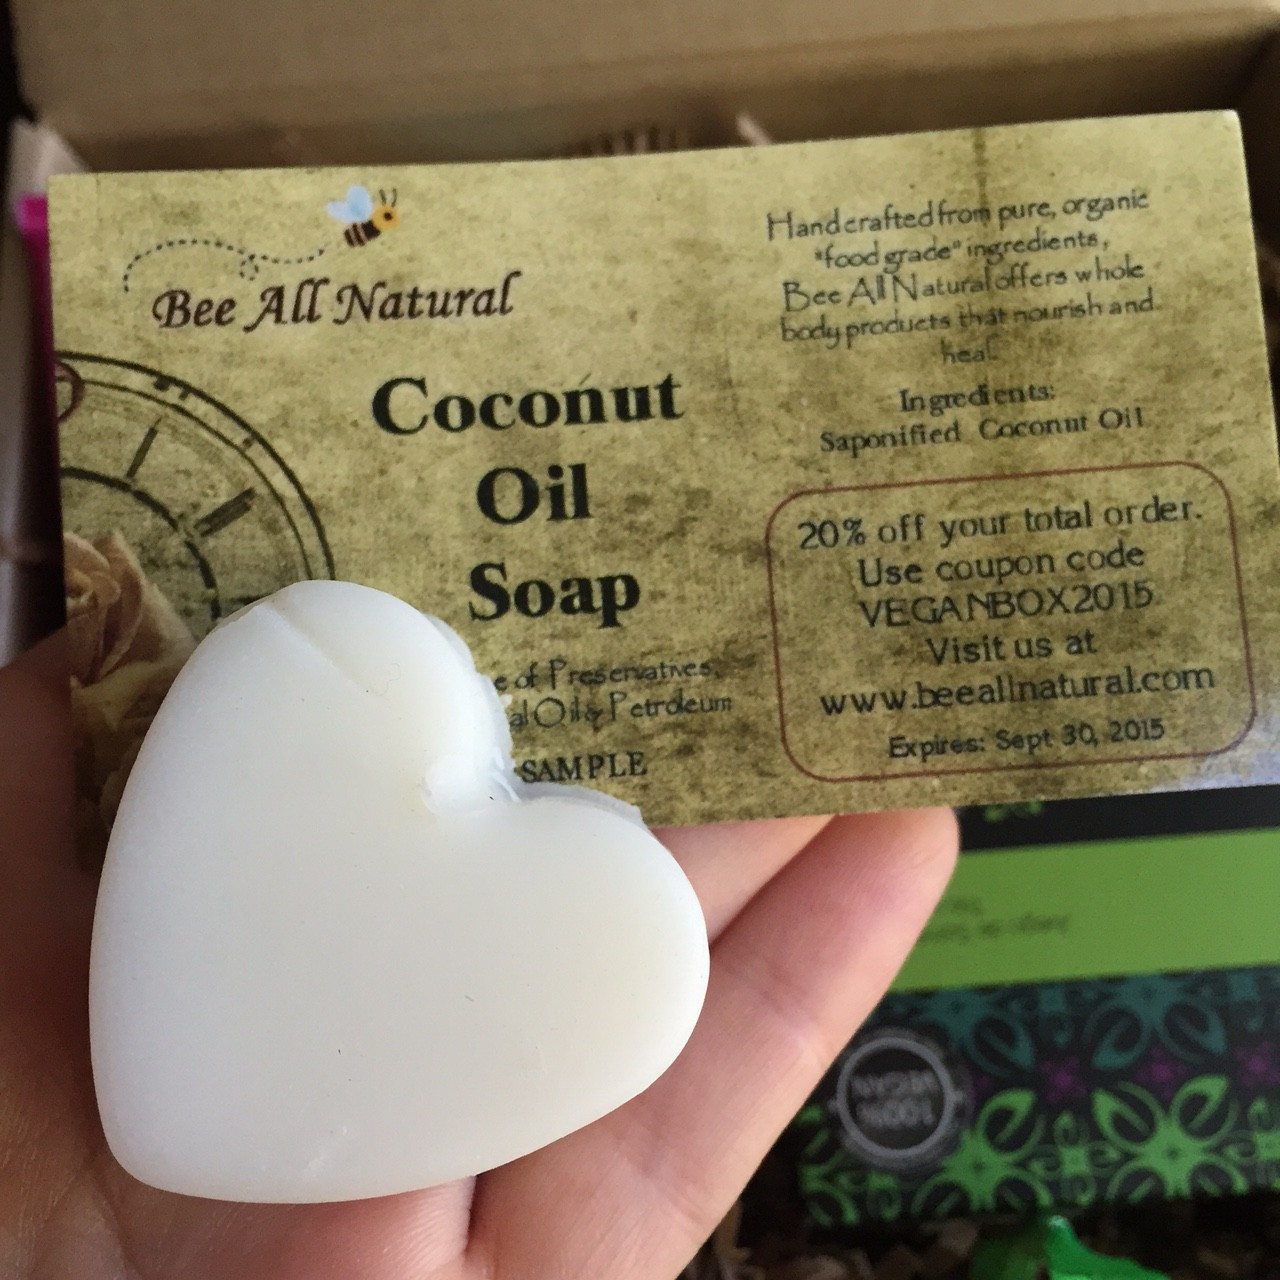 Bee All Natural Coconut Oil Soap